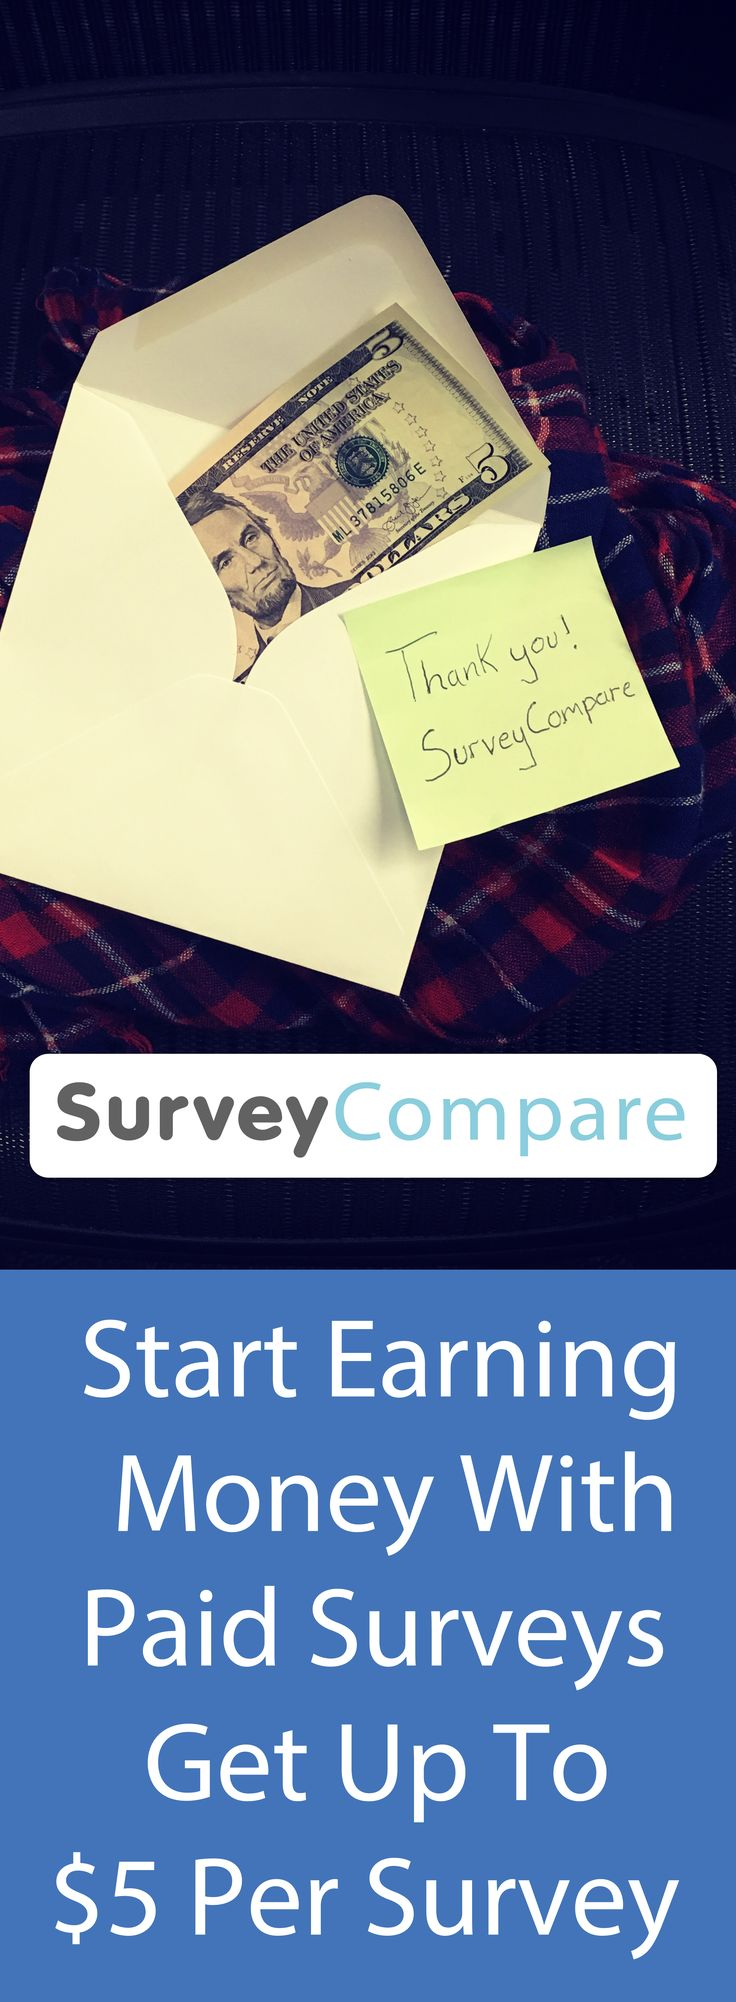 The amount of money you can earn depends on how many companies you choose to sign up for and how long you want to spend completing surveys. For instance, the average survey pays $5; taking 5 surveys a day, 5 days a week gives $500/month. Find out more by clicking on the image.